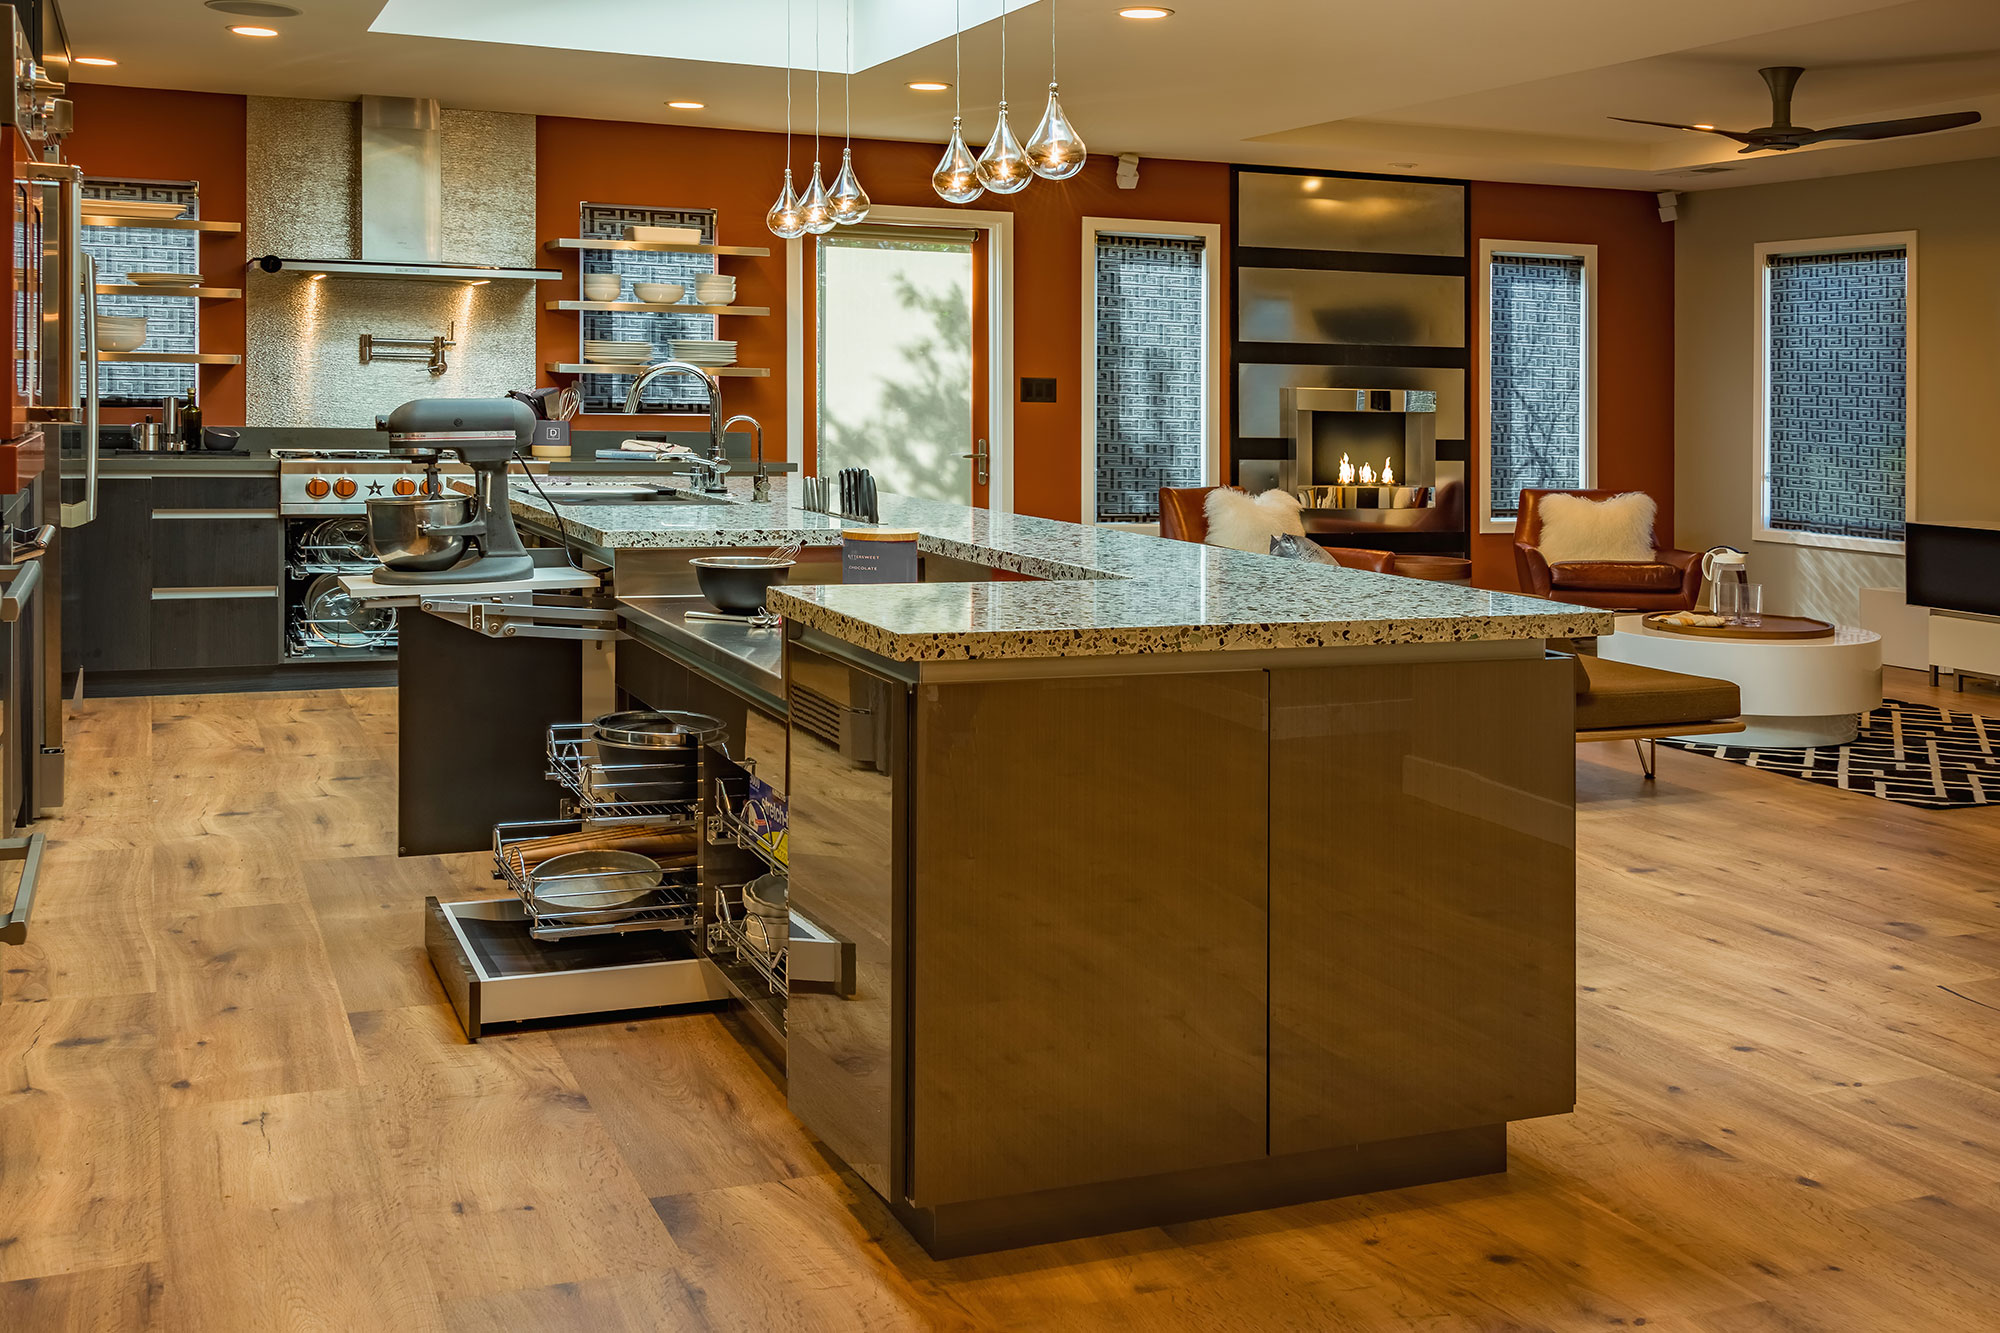 RemodelWest Professional Contemporary Kitchen Remodel Silicon Valley